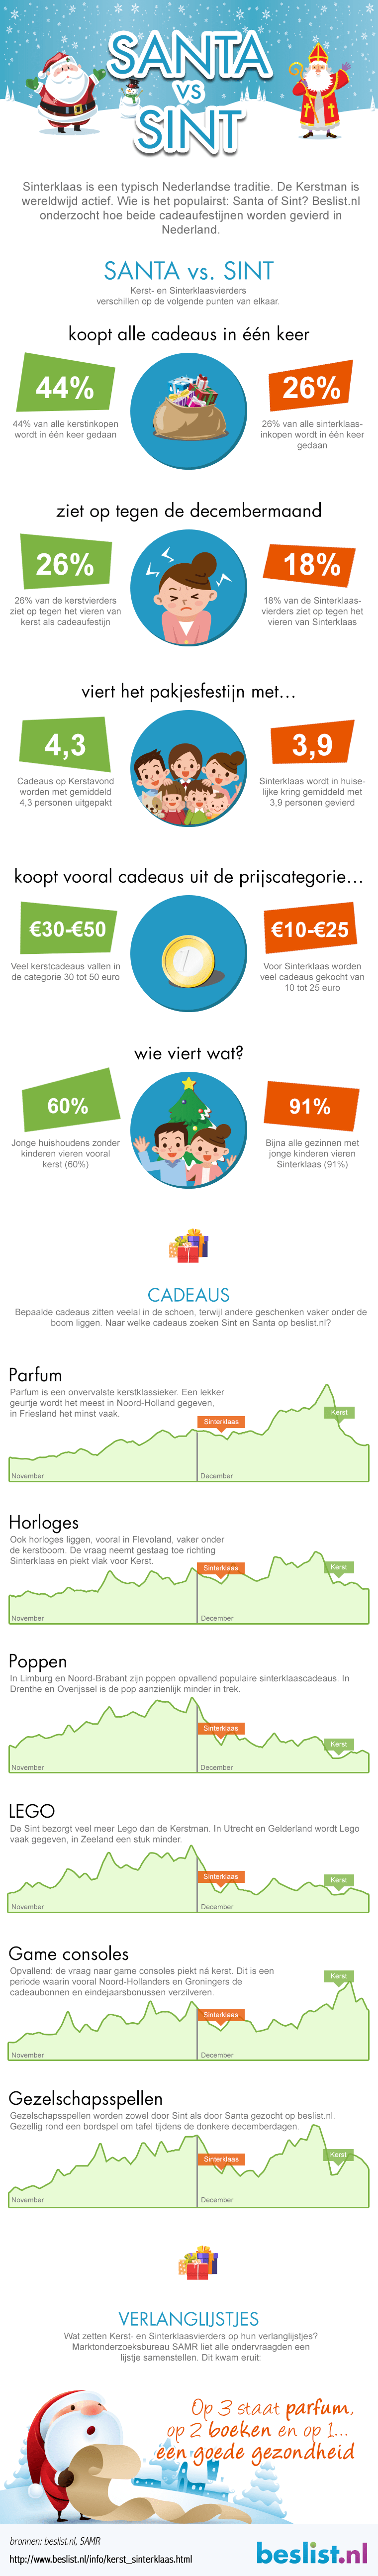 Infographic Santa vs Sint